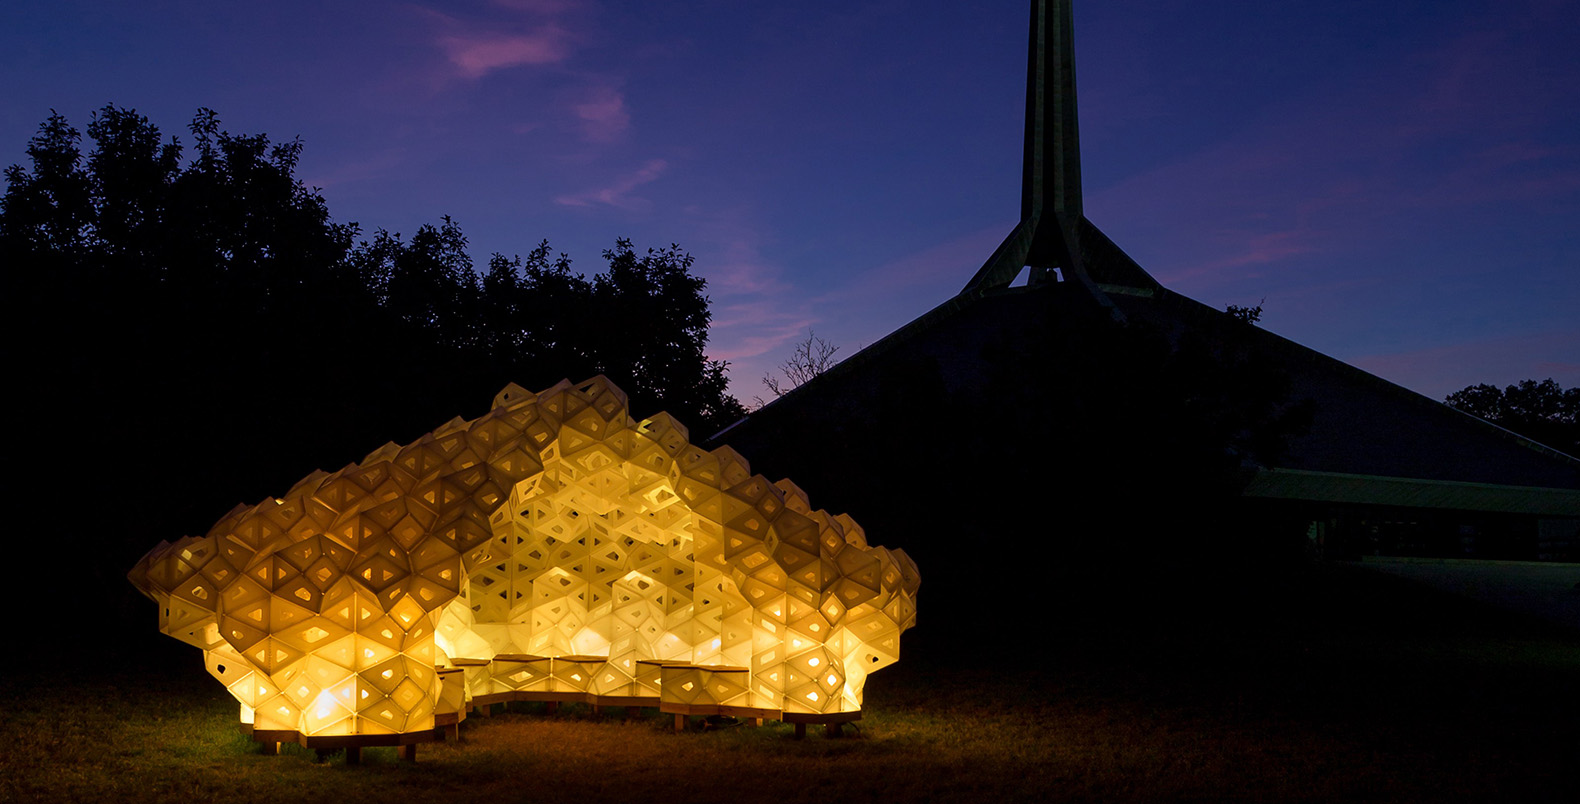 Spectacular origami pavilion made of recycled plastic pops up in Columbus, Indiana